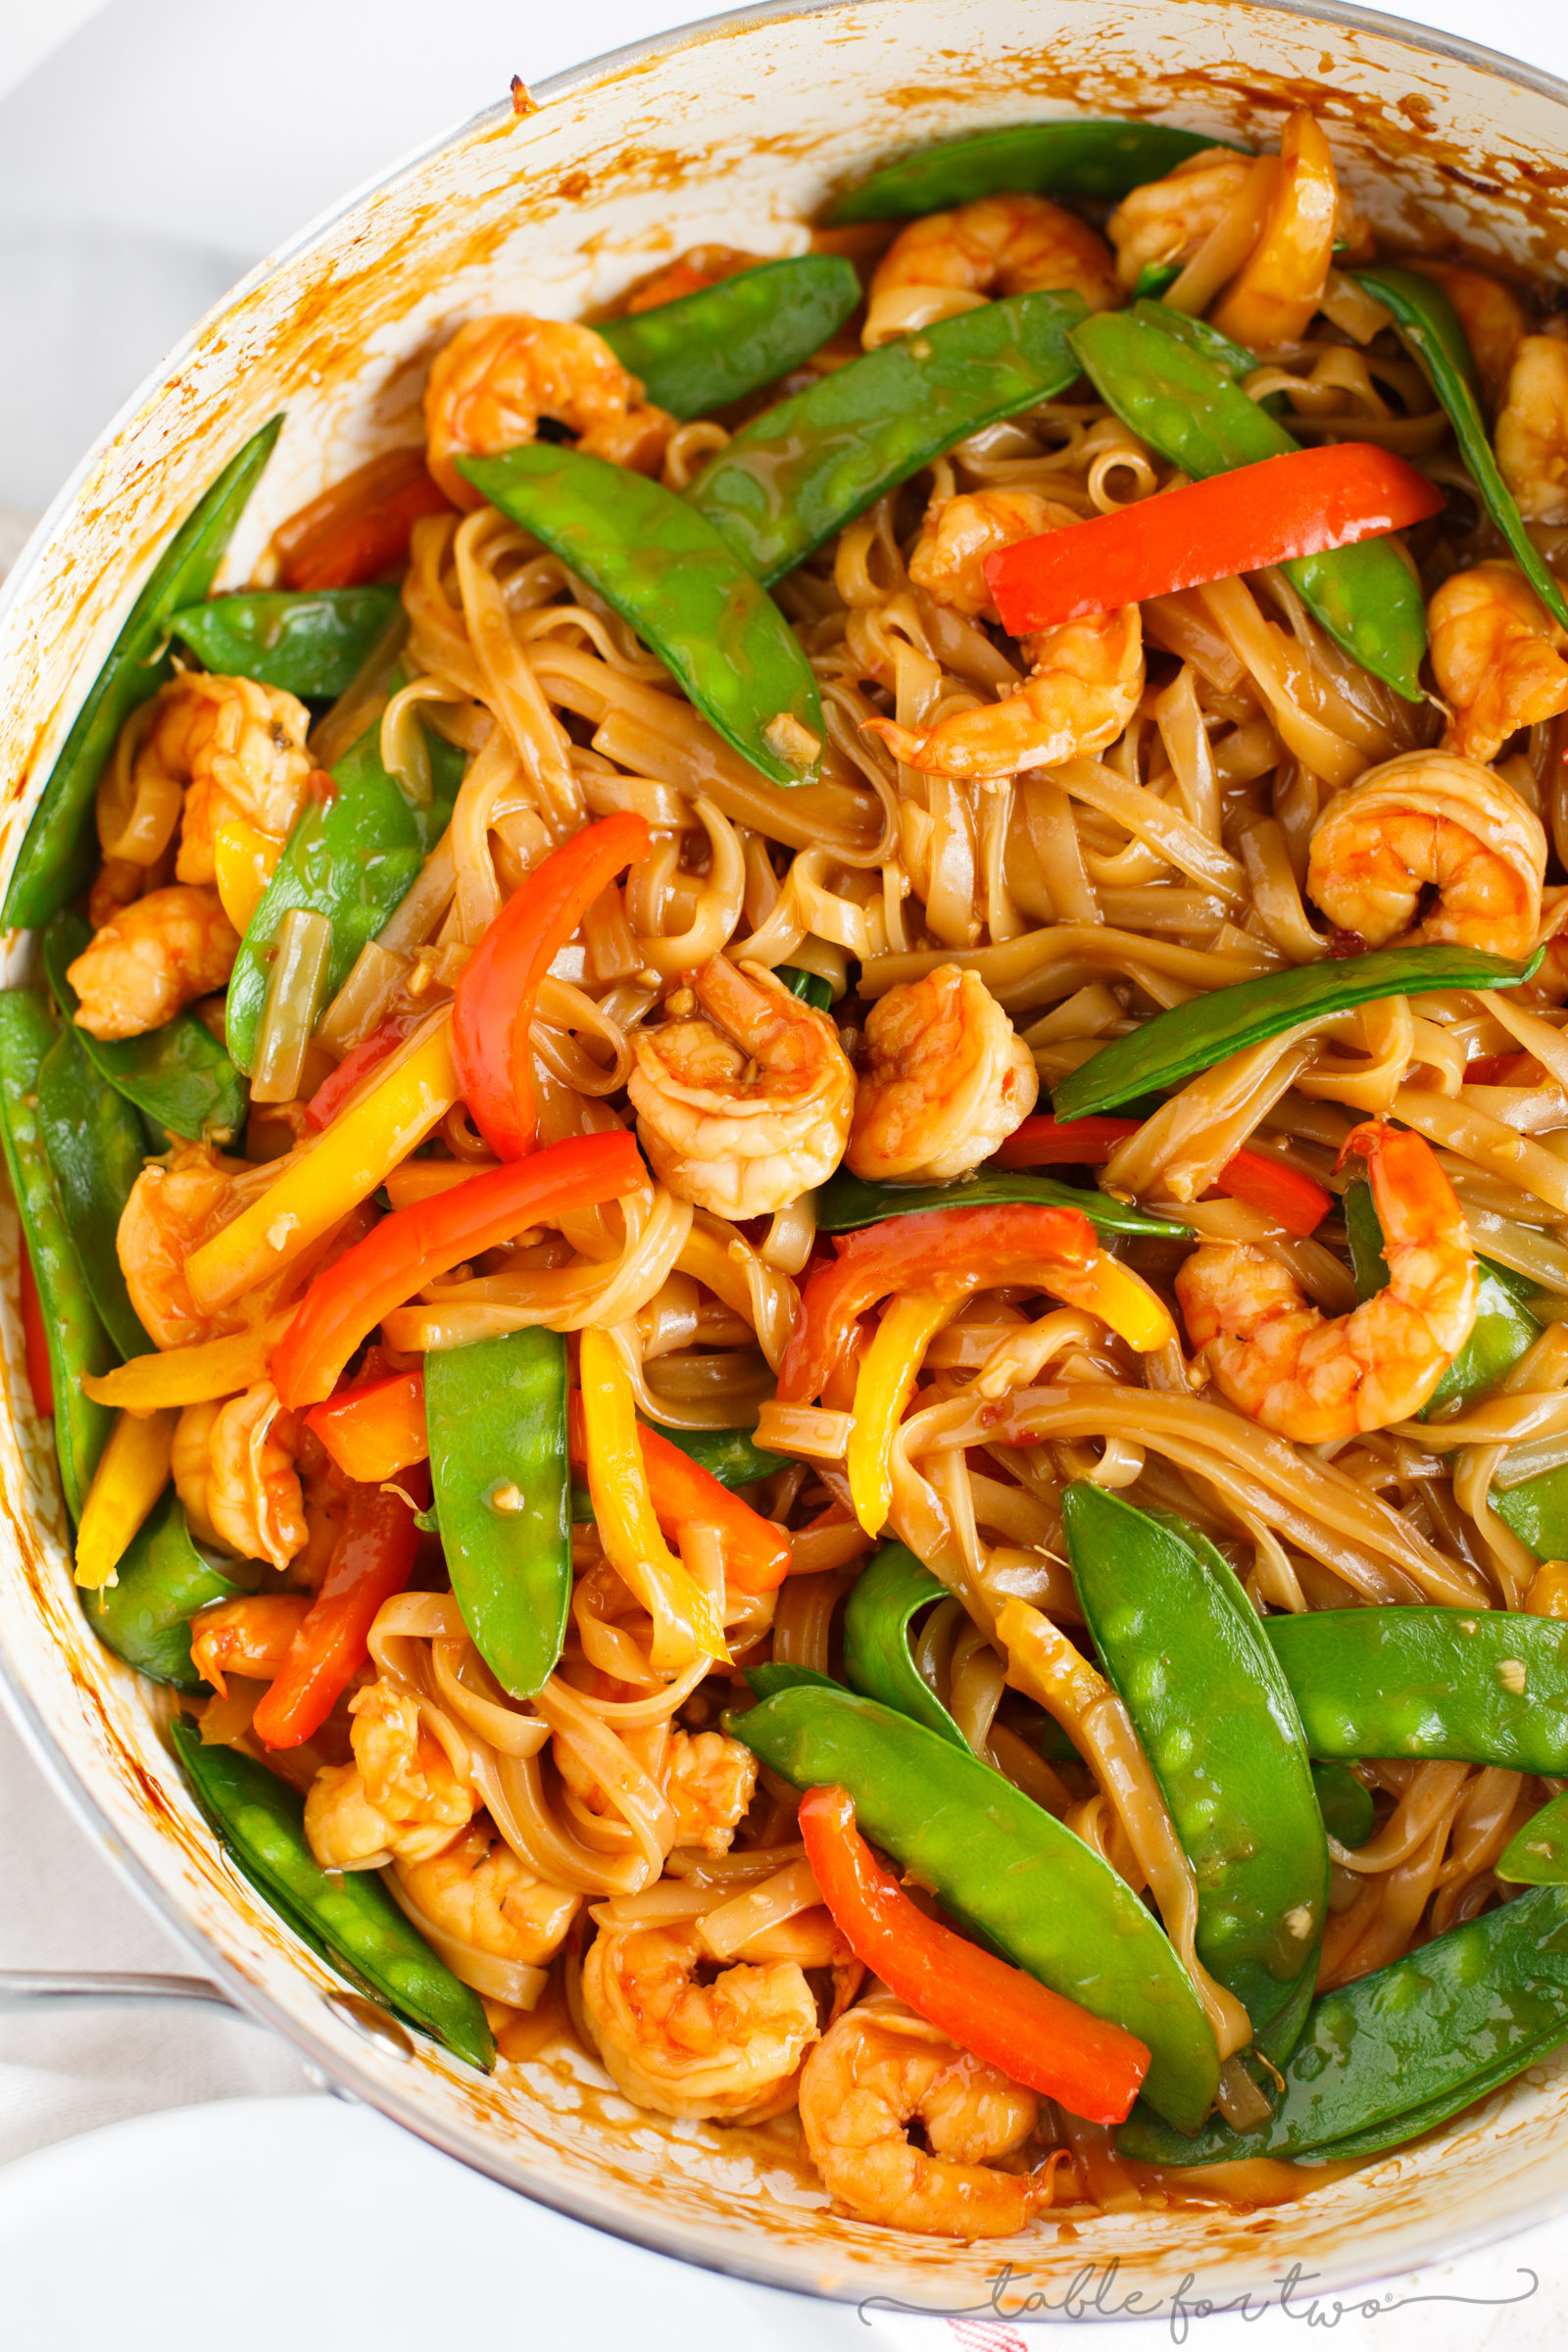 Ginger Garlic Shrimp Noodle Stir Fry Table For Two By Julie Chiou